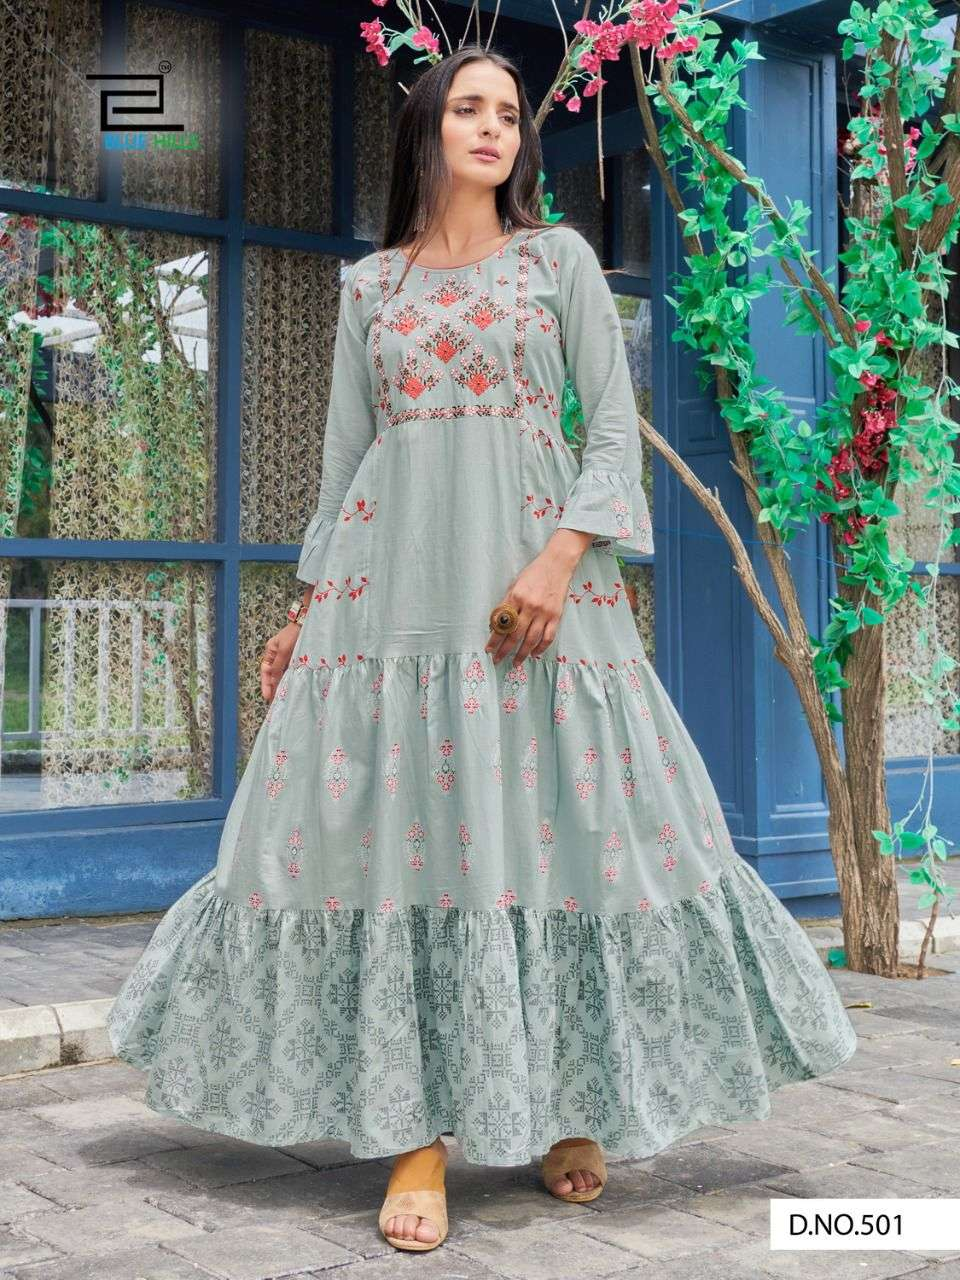 BLUE HILLS LIVIK VOL 5 DESIGNER COTTON CAMBRIC WITH NECK EMBROIDERY LONG FRILL GOWNS WHOLESALE